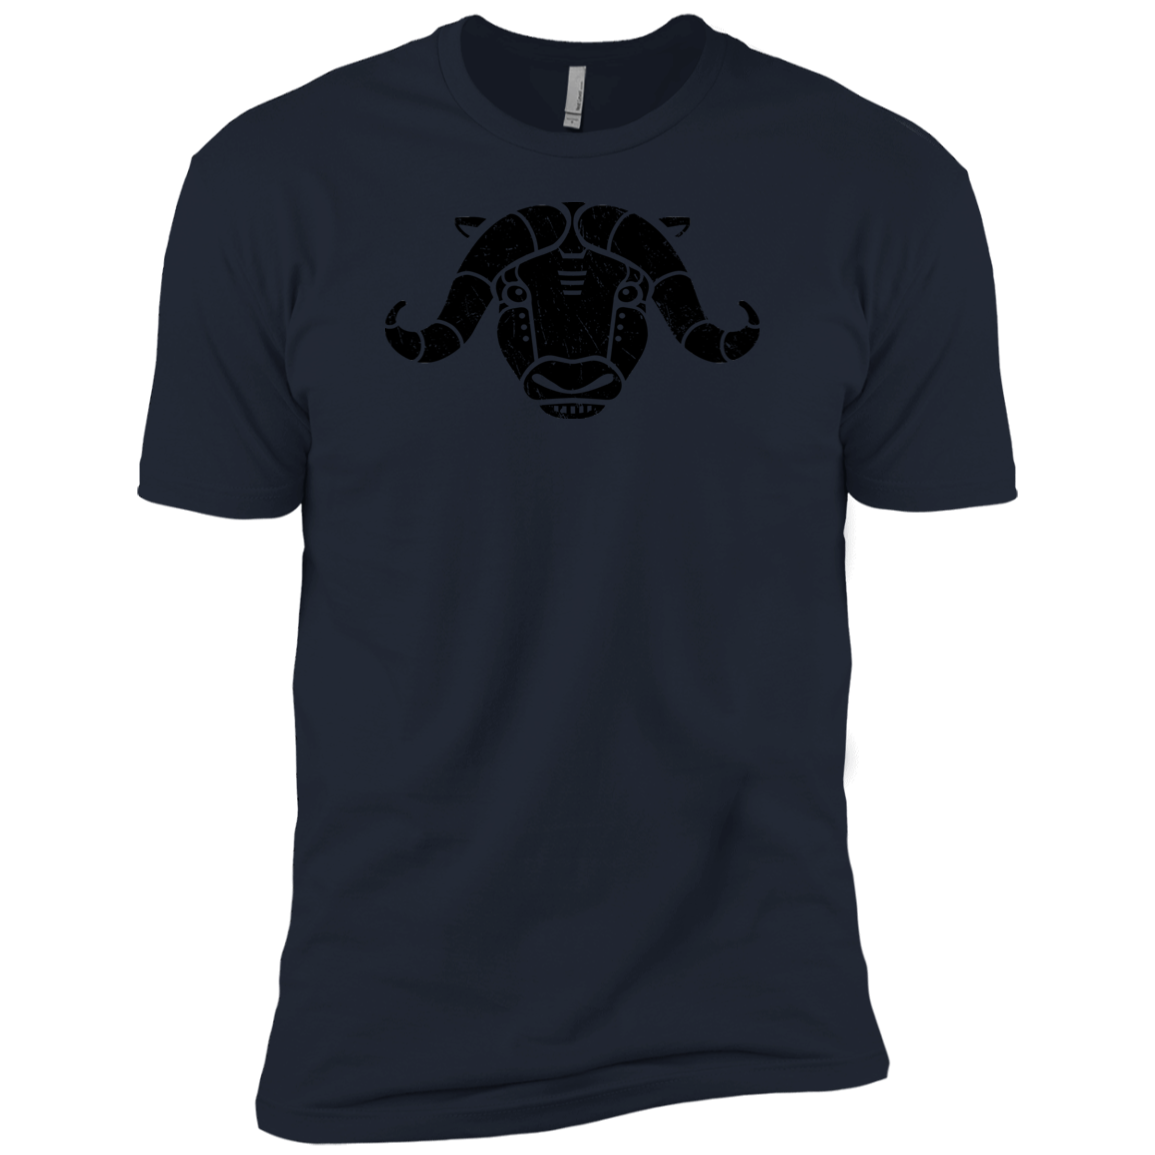 Black Distressed Emblem (Musk Ox/Moxie)